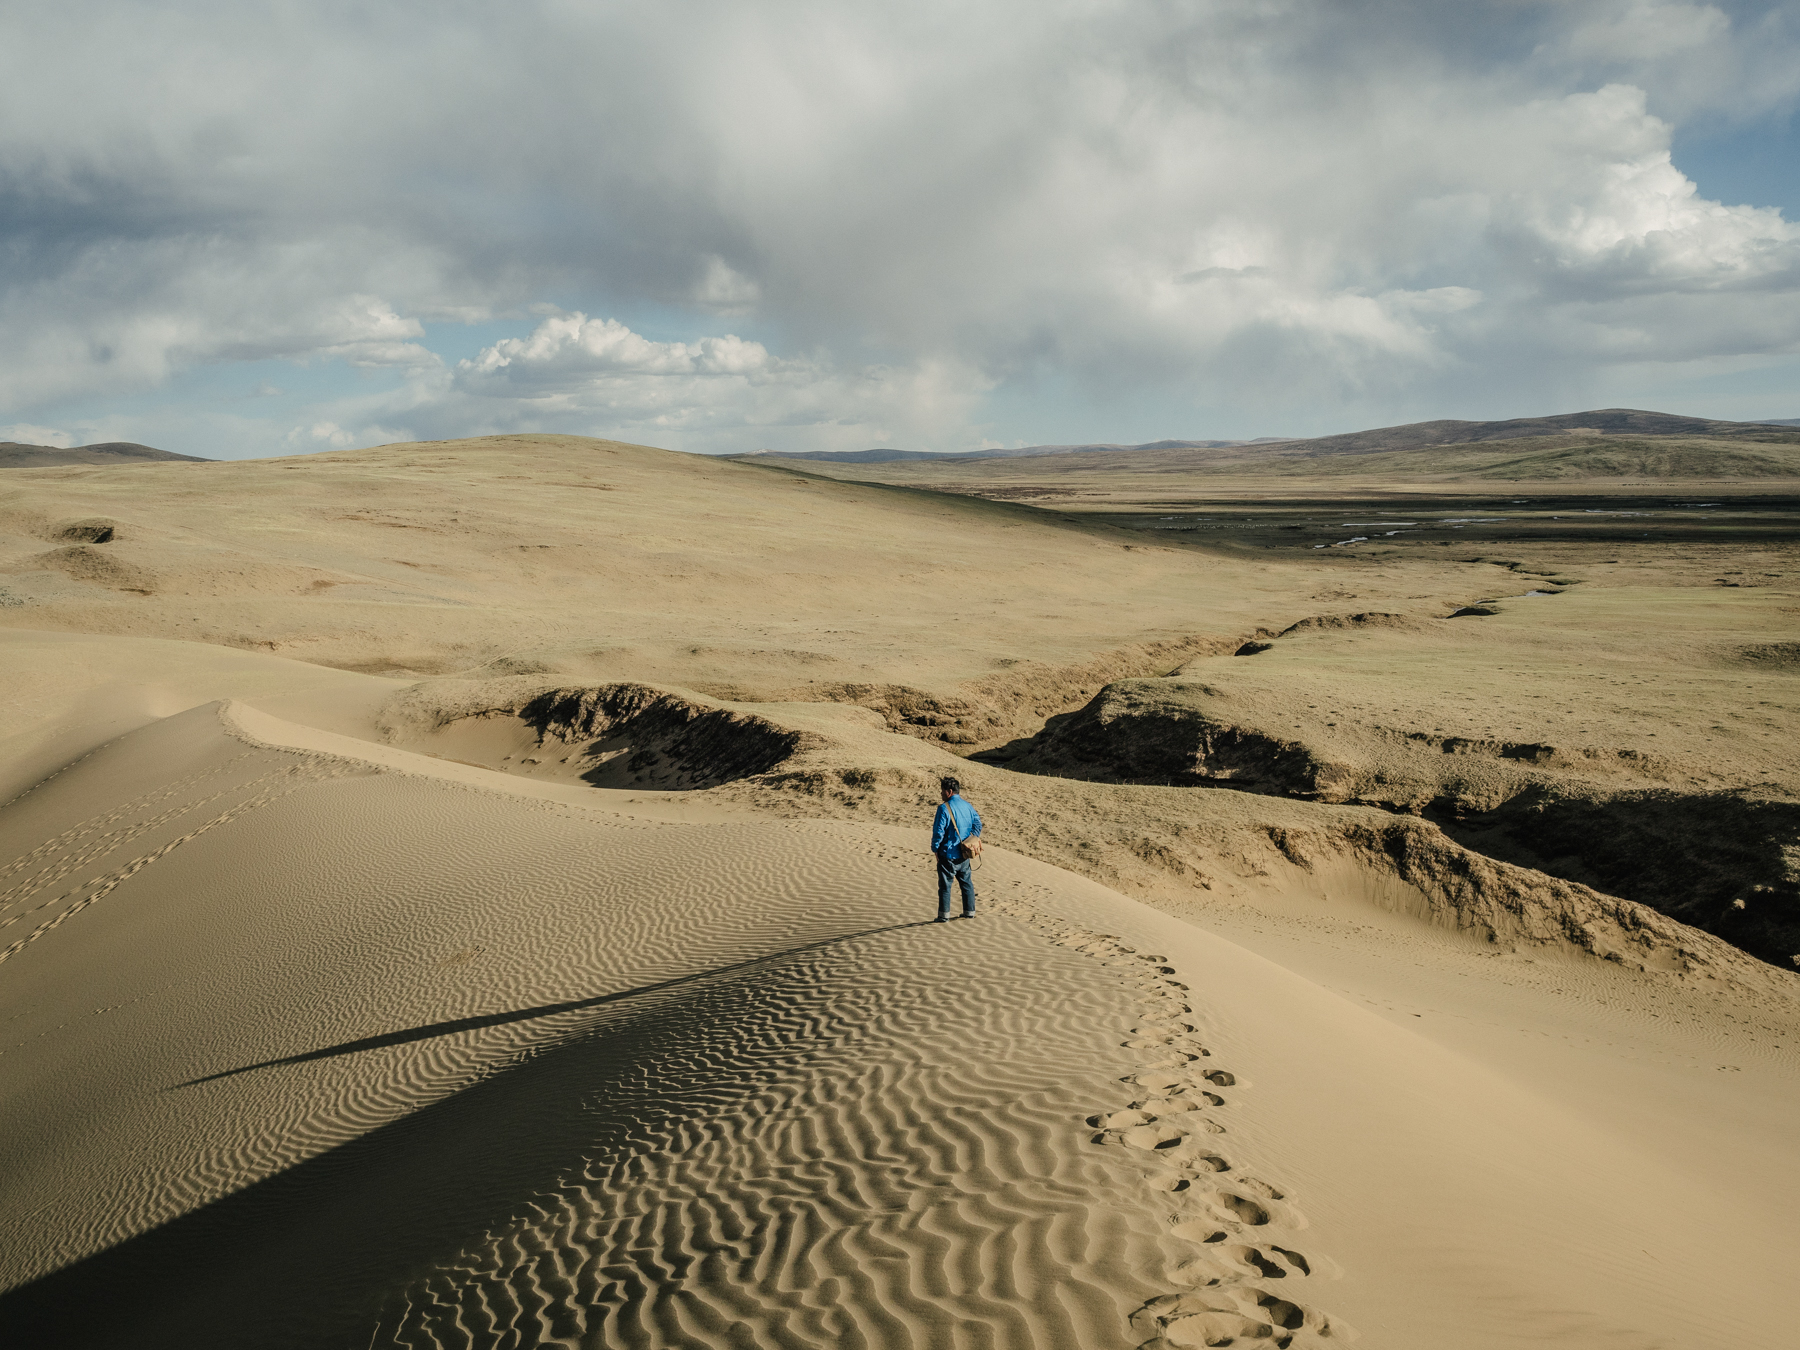 On the edge of a desert that was once grassland, Yang observes the landscape from the top of a sand dune.